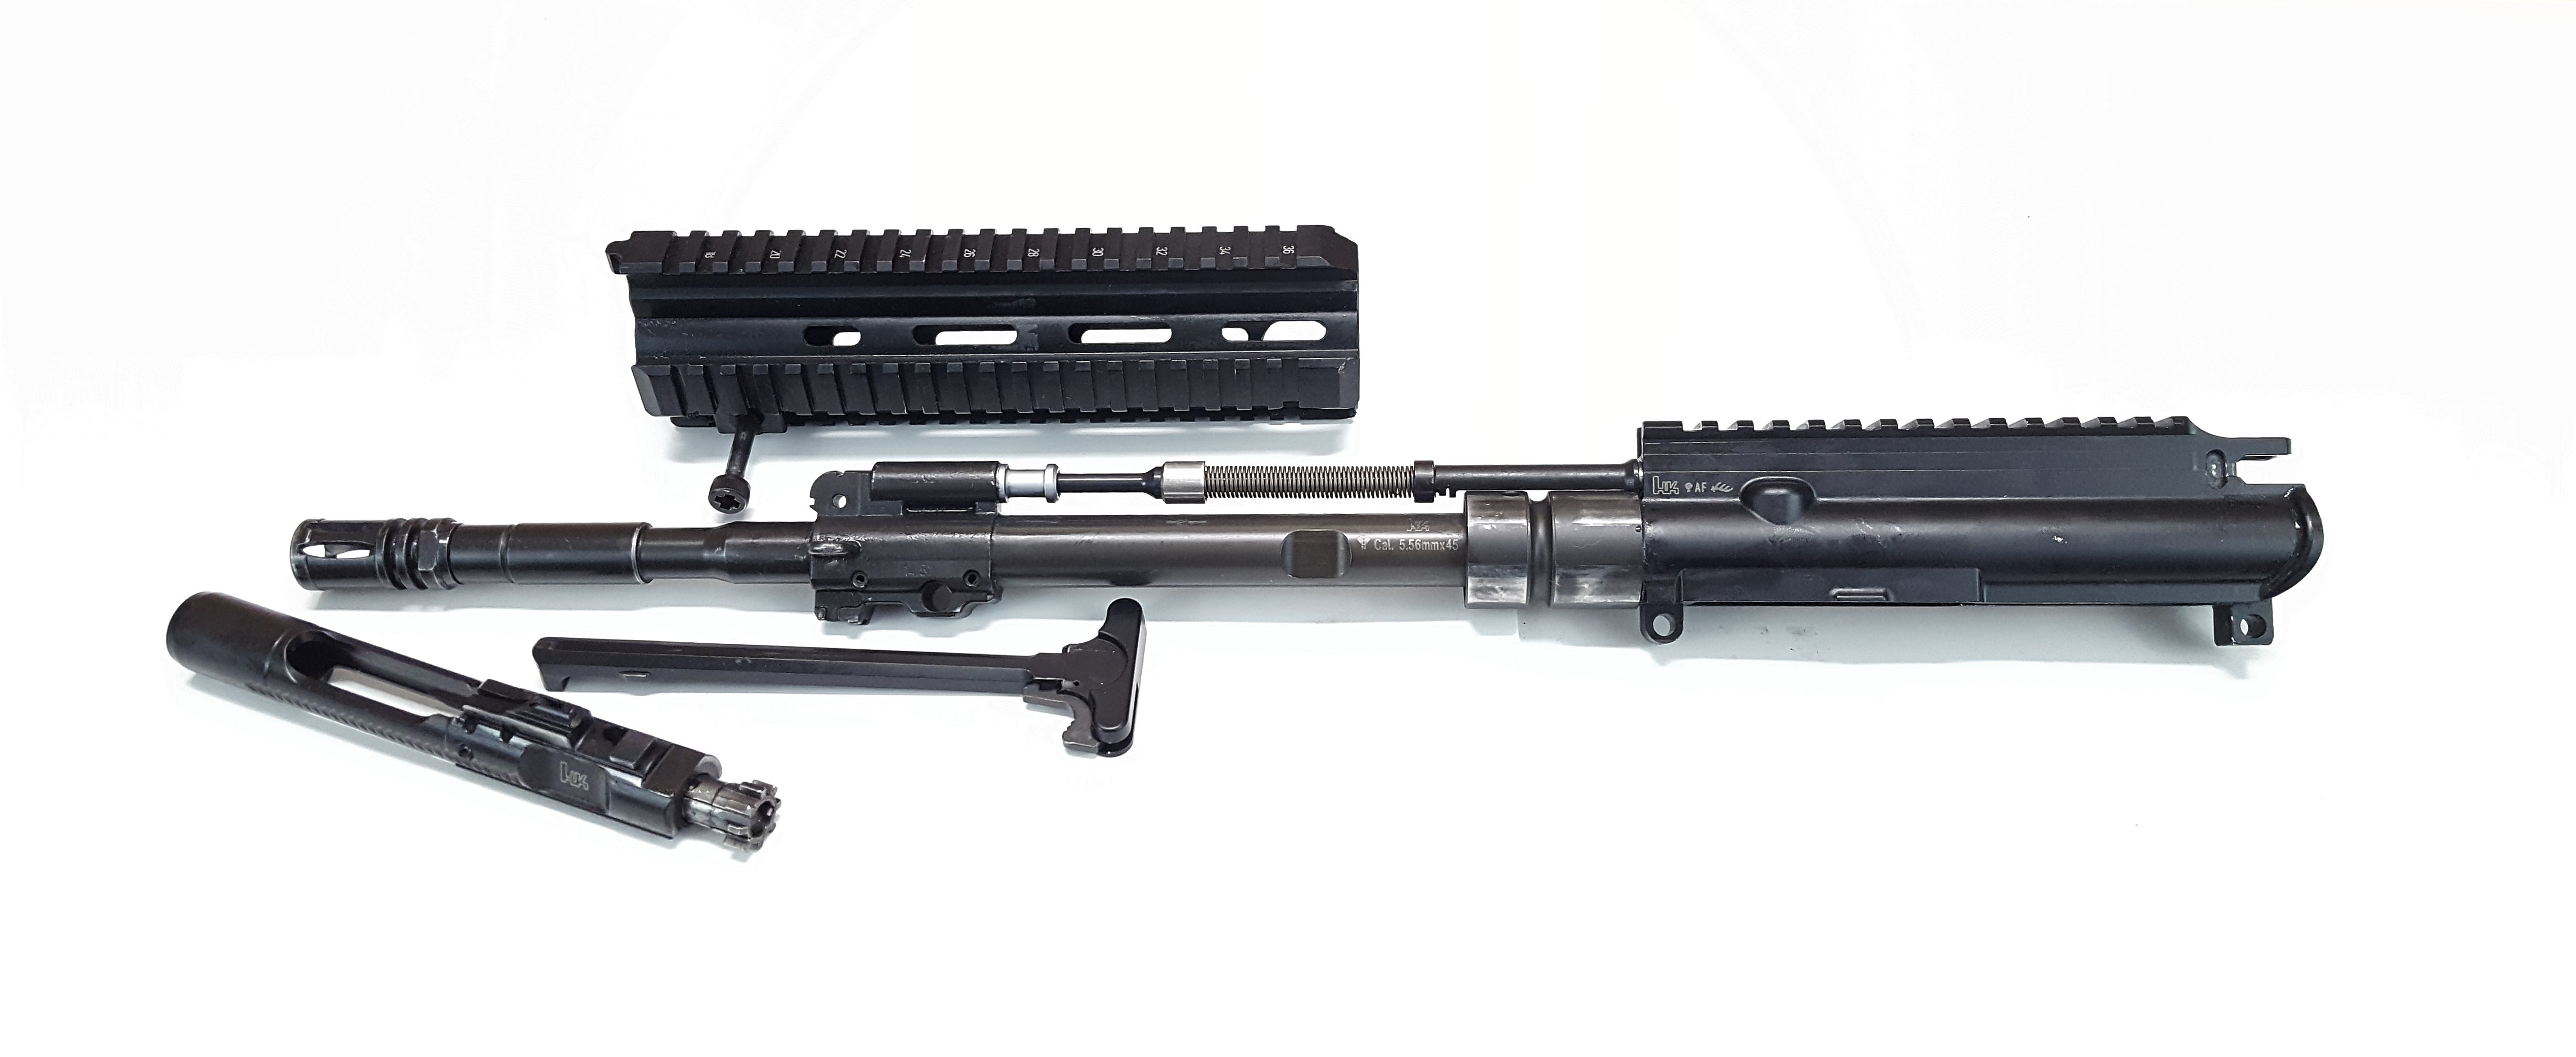 Used Heckler Amp Koch Factory Hk 416 14 5 Inch Upper With